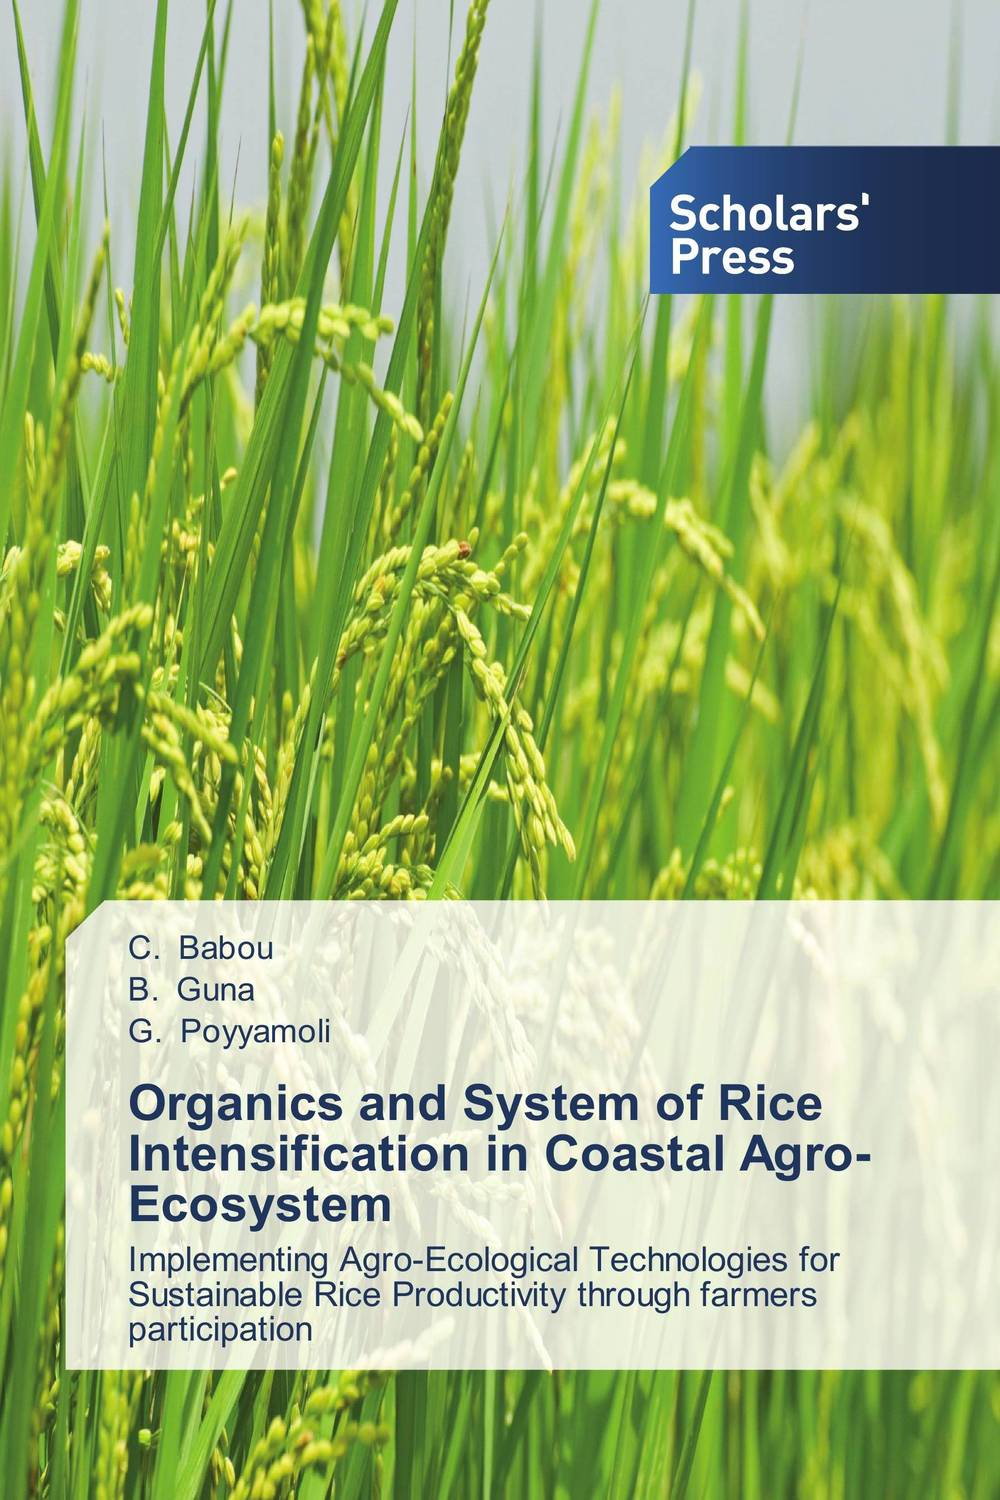 Organics and System of Rice Intensification in Coastal Agro-Ecosystem muhammad zaheer khan and babar hussain reptiles of coastal areas of karachi